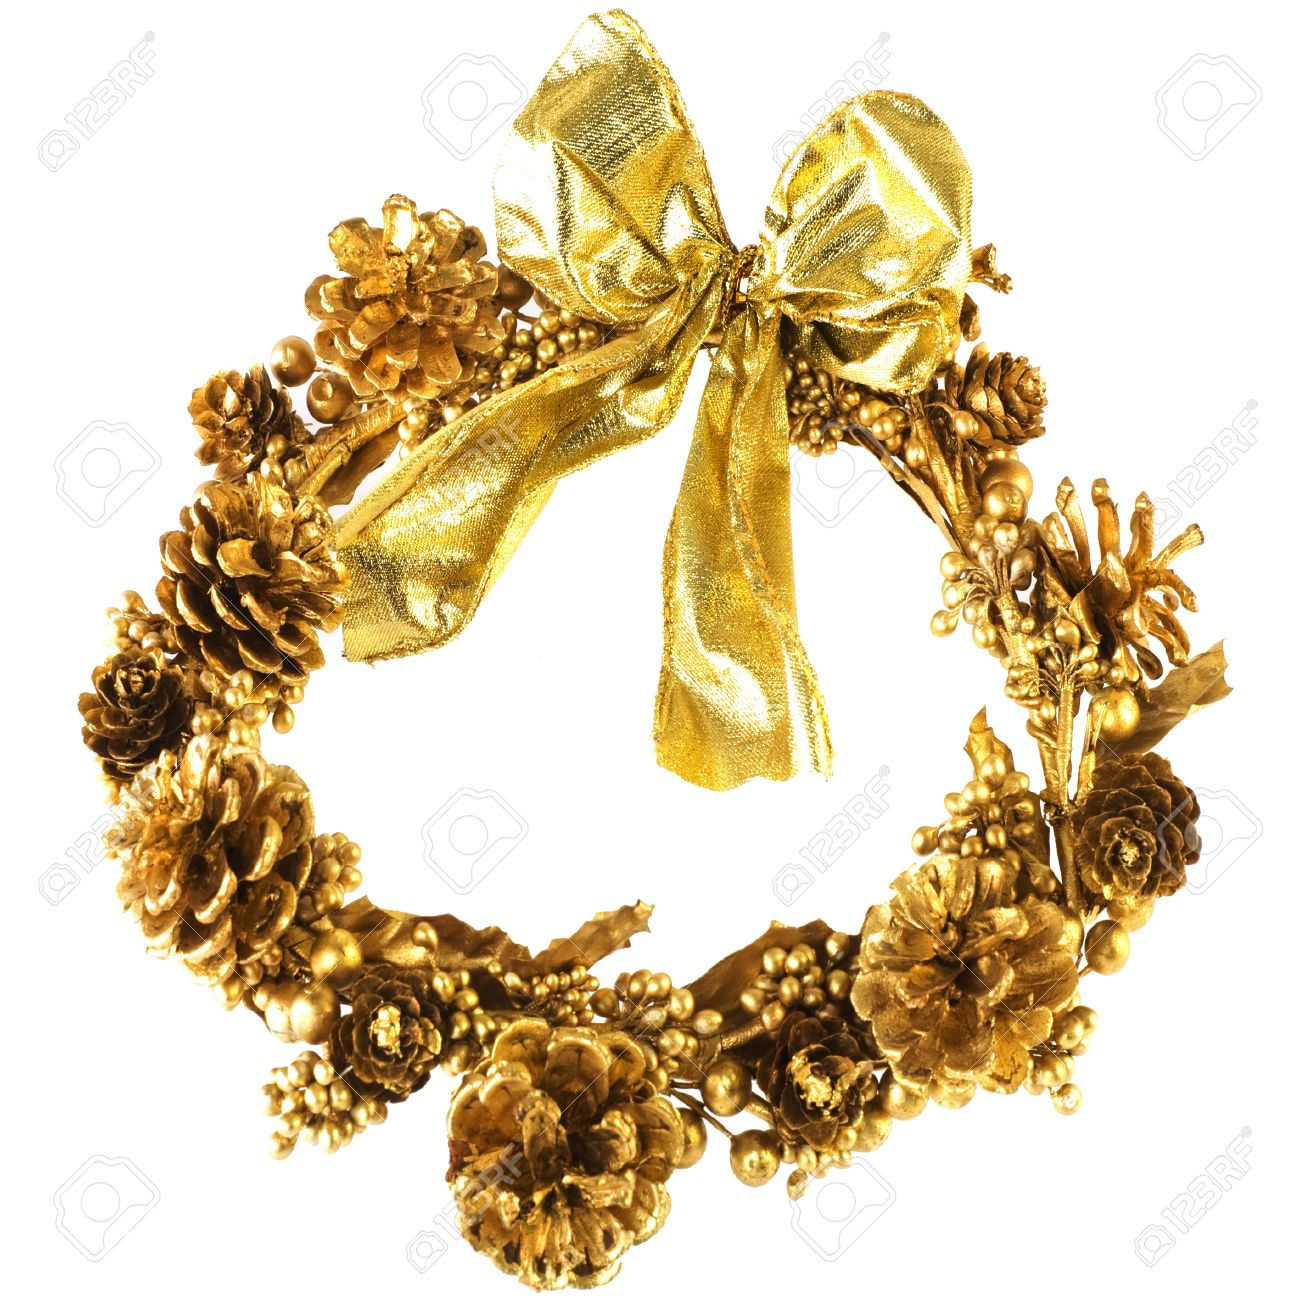 Gold Christmas Wreath.Golden Christmas Wreath With Pine Cones And Ribbon